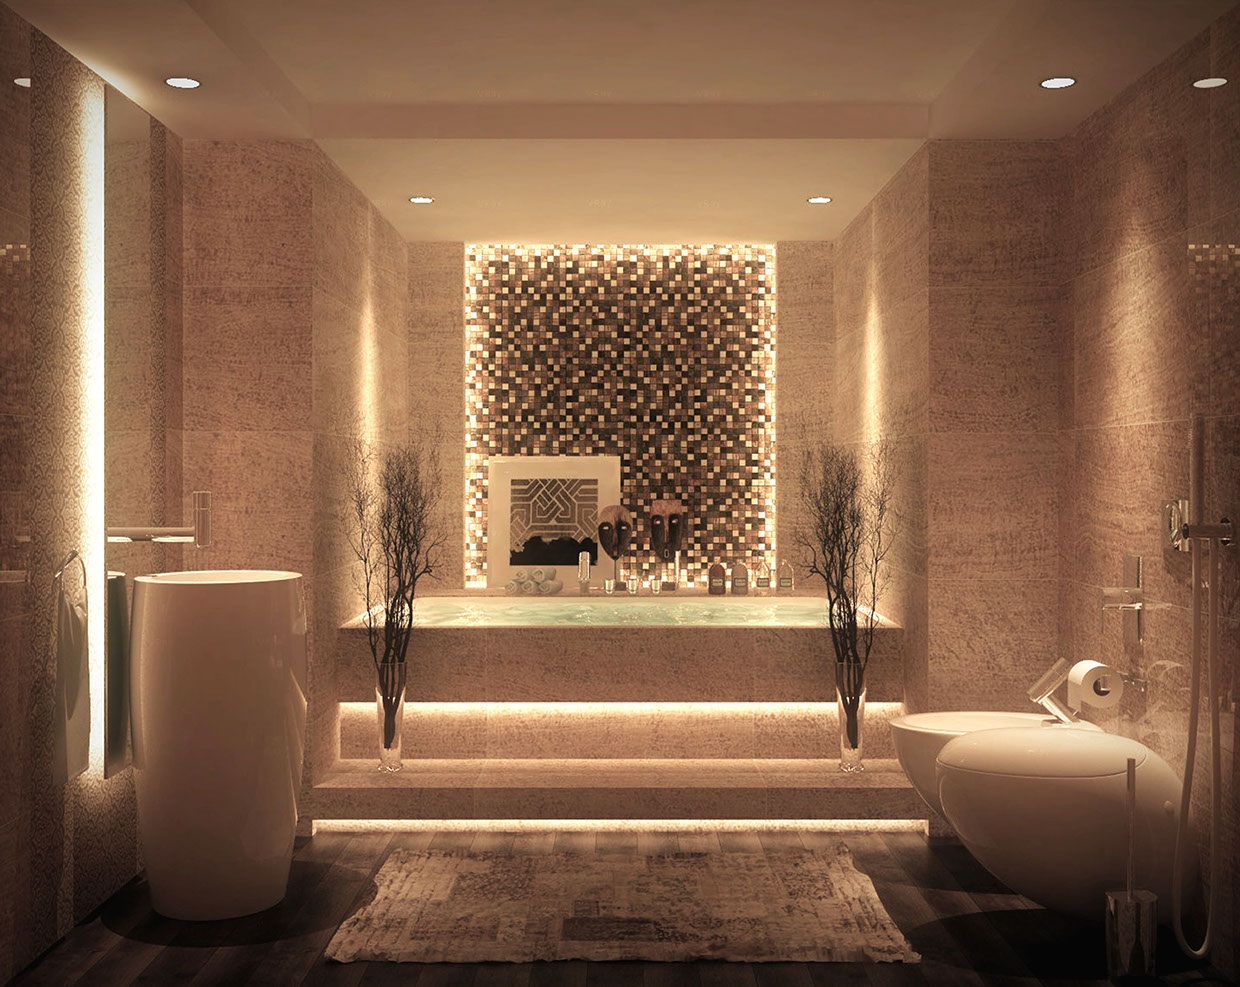 Luxurious Bathrooms With Stunning Design Details - Luxurious bathrooms